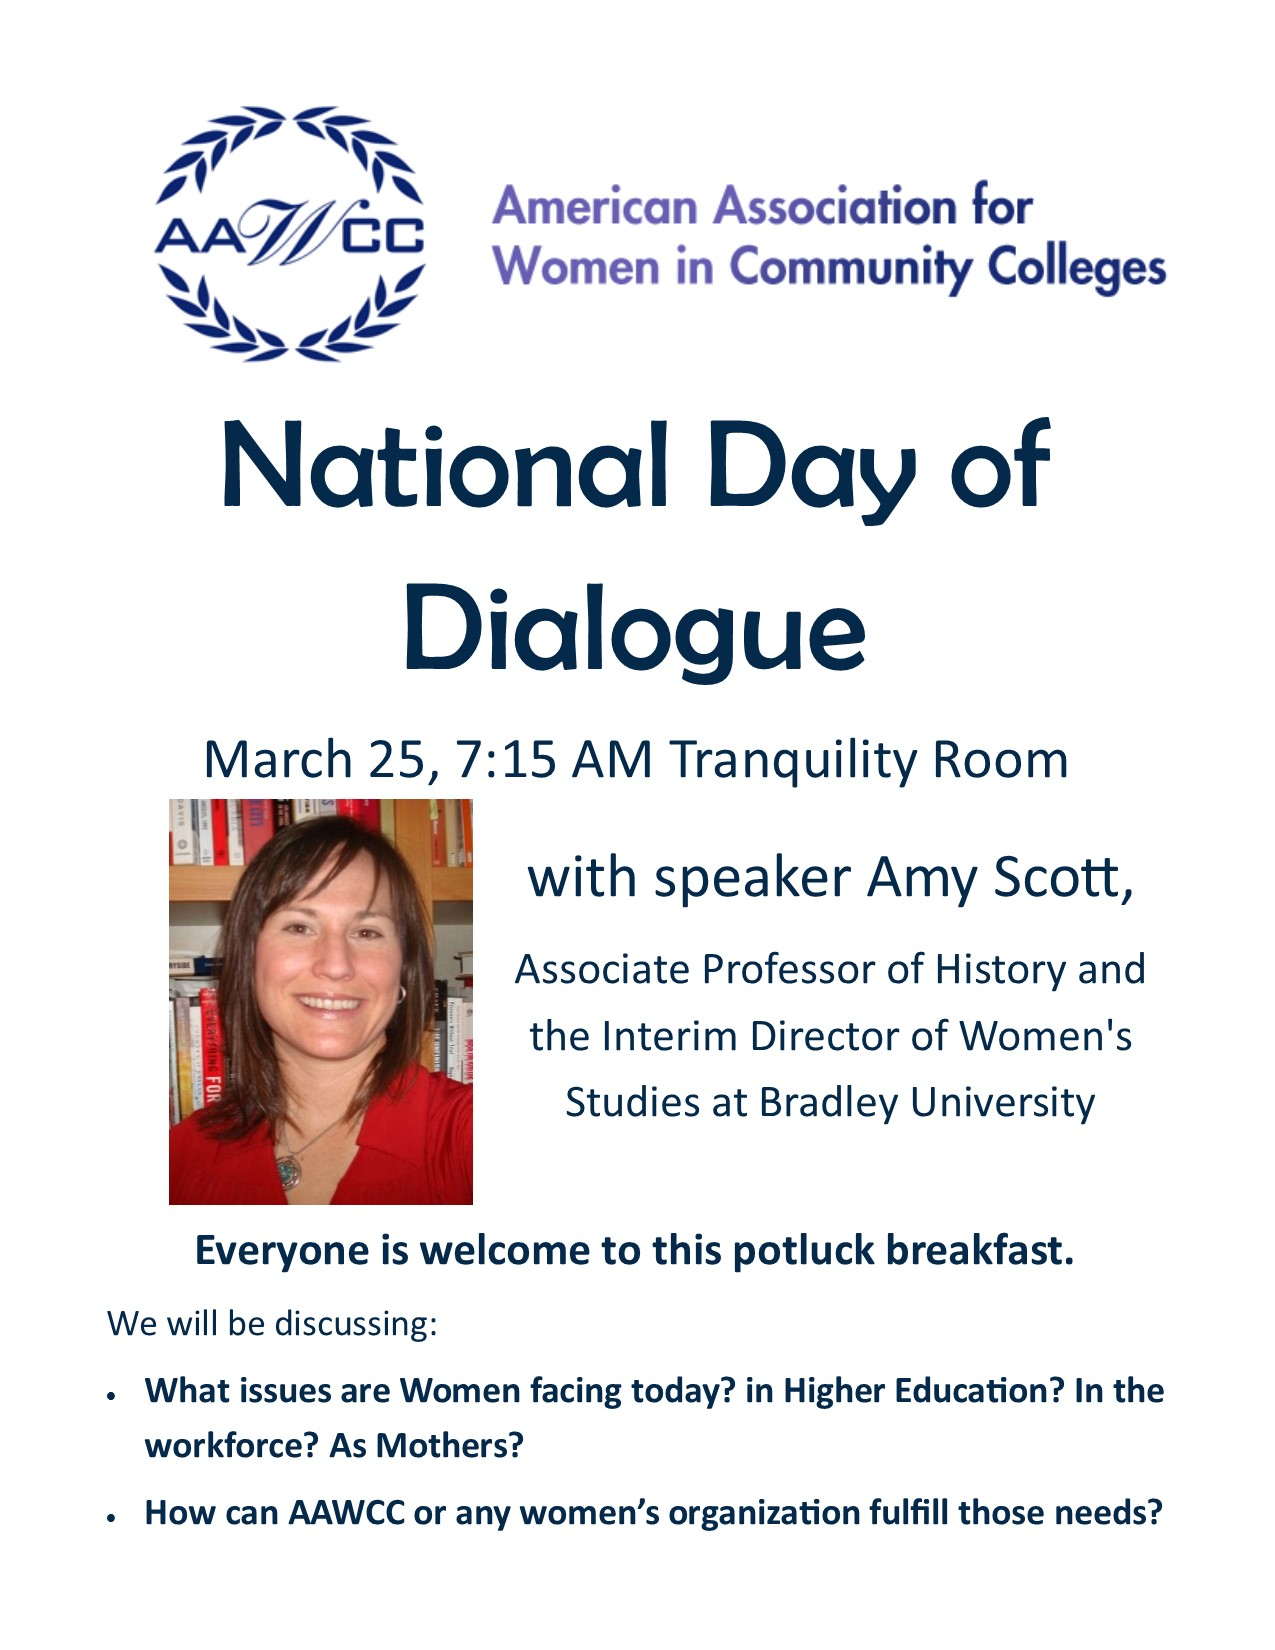 aawcc national day of dialogue flyer 2015